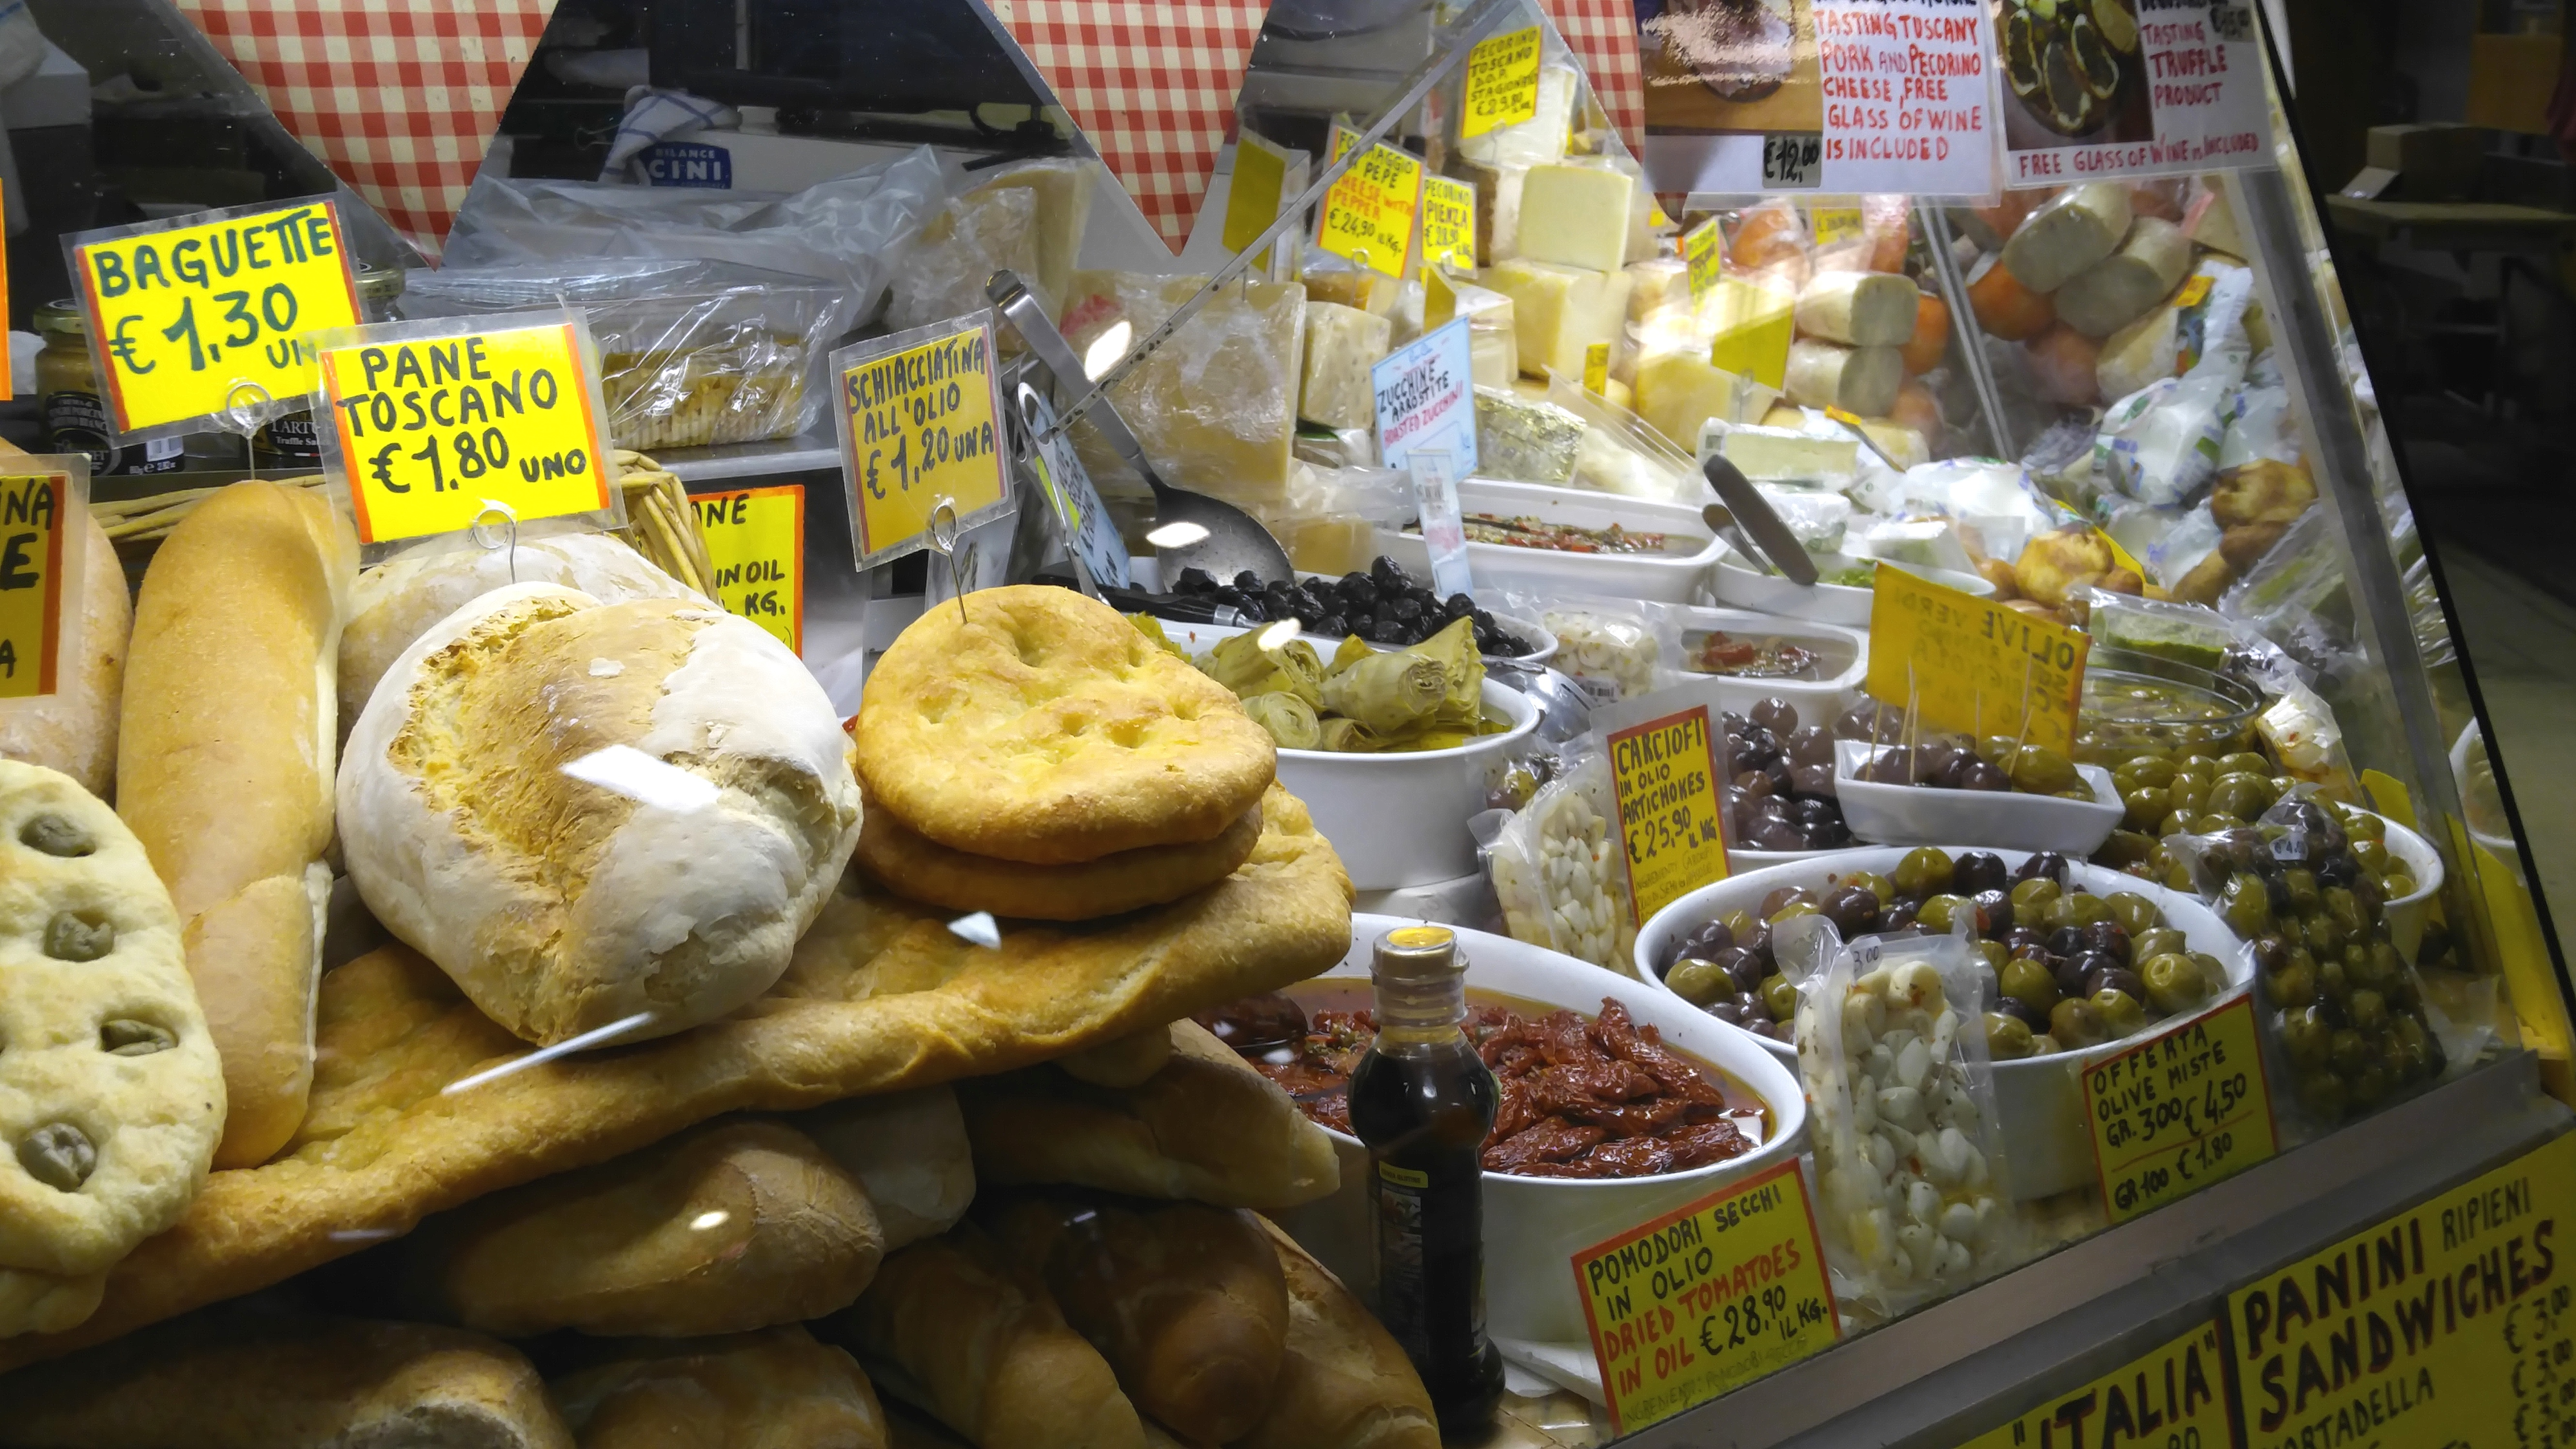 Cheese and Olives at Mercato Centrale Firenze